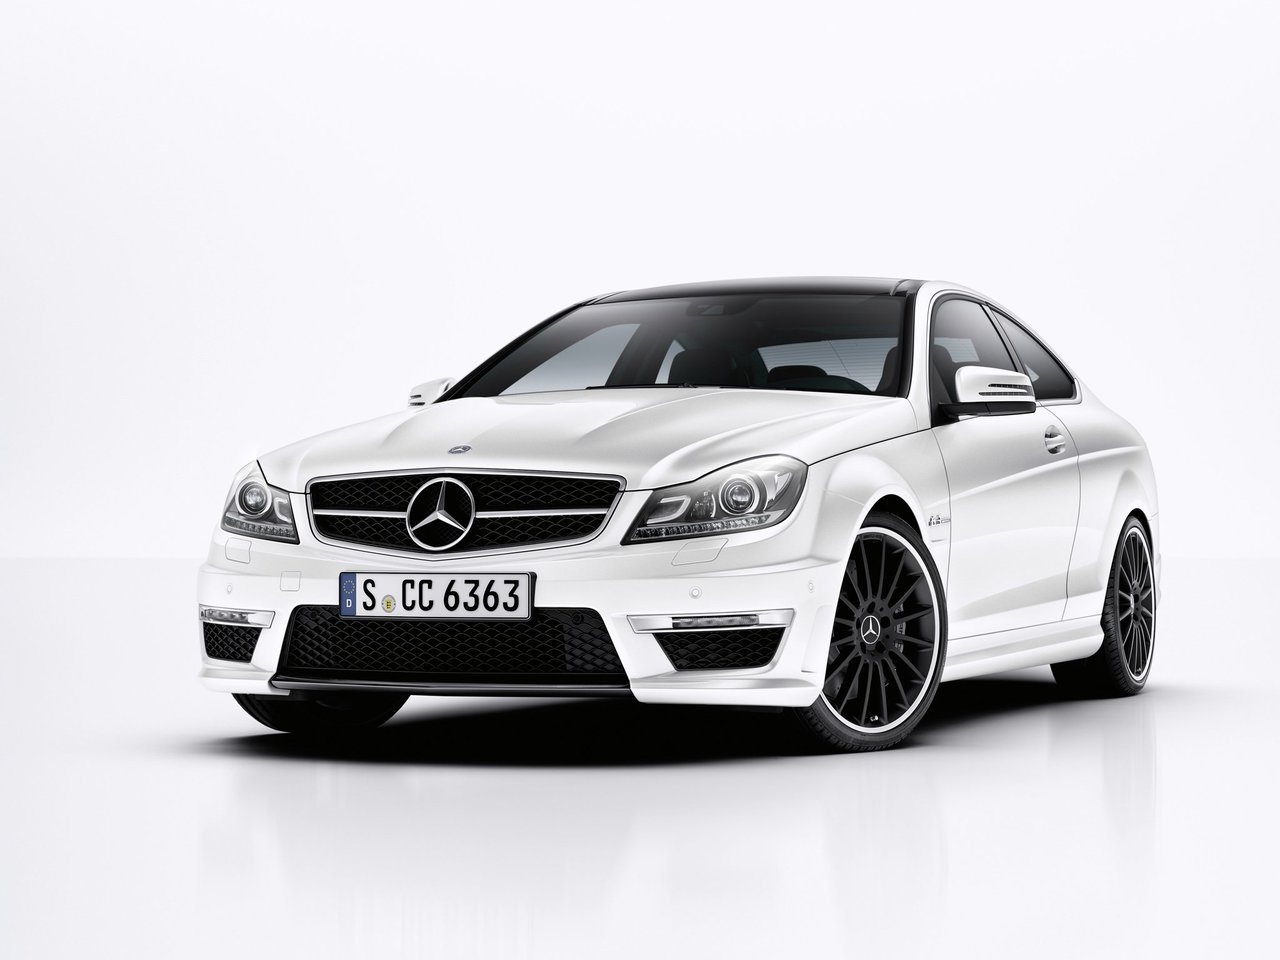 C63 AMG Coupe (W204)